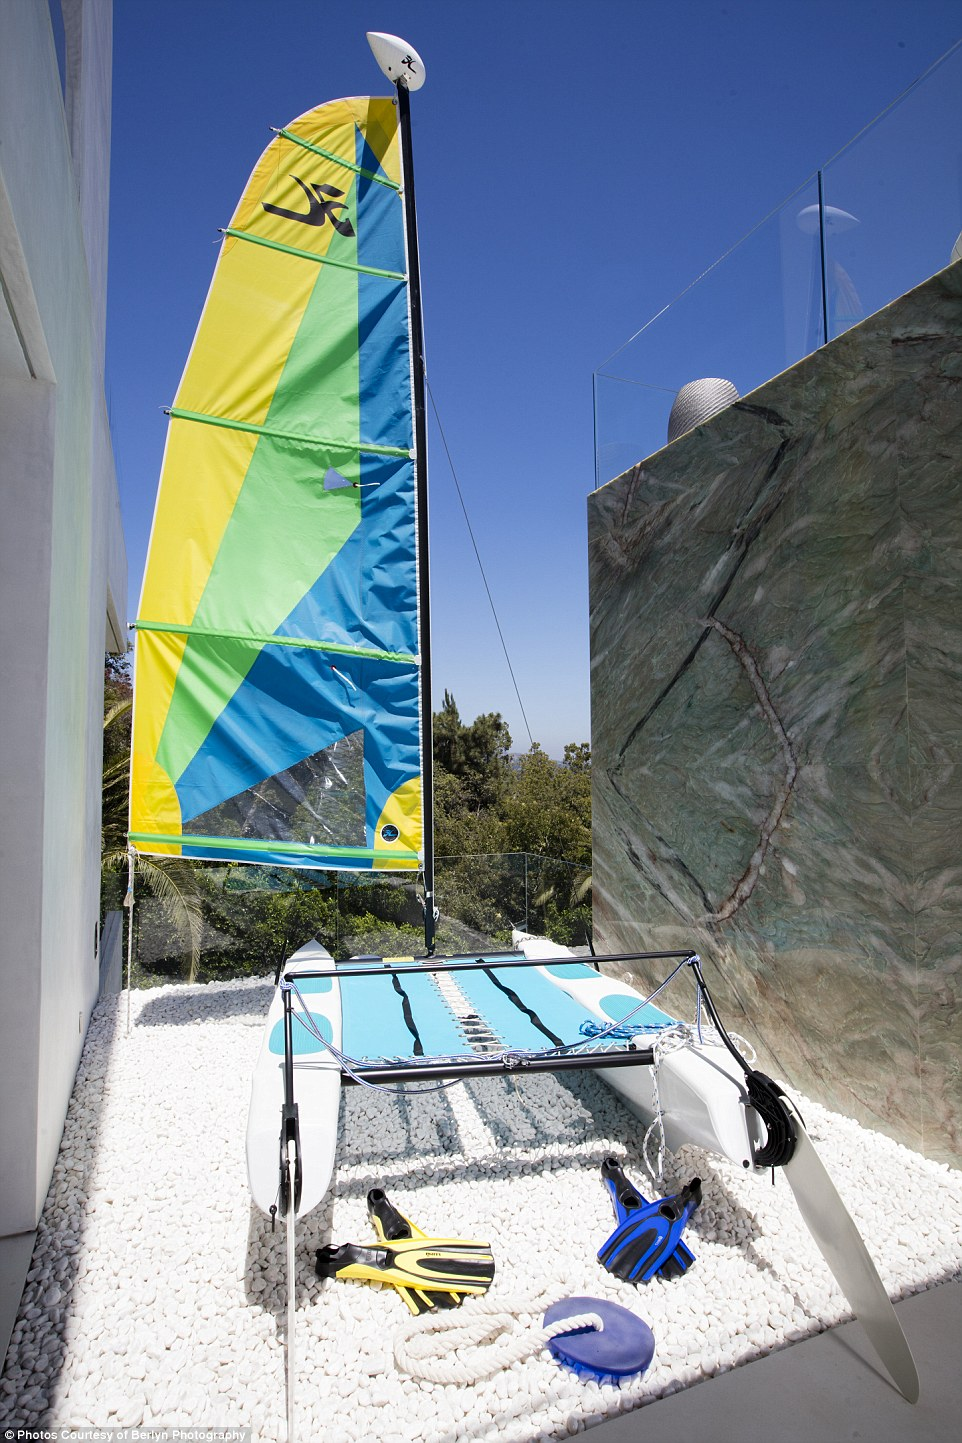 A Hobie Cat is displayed next to the infinity pool, in keeping with other nautical nuances scattered around the estate